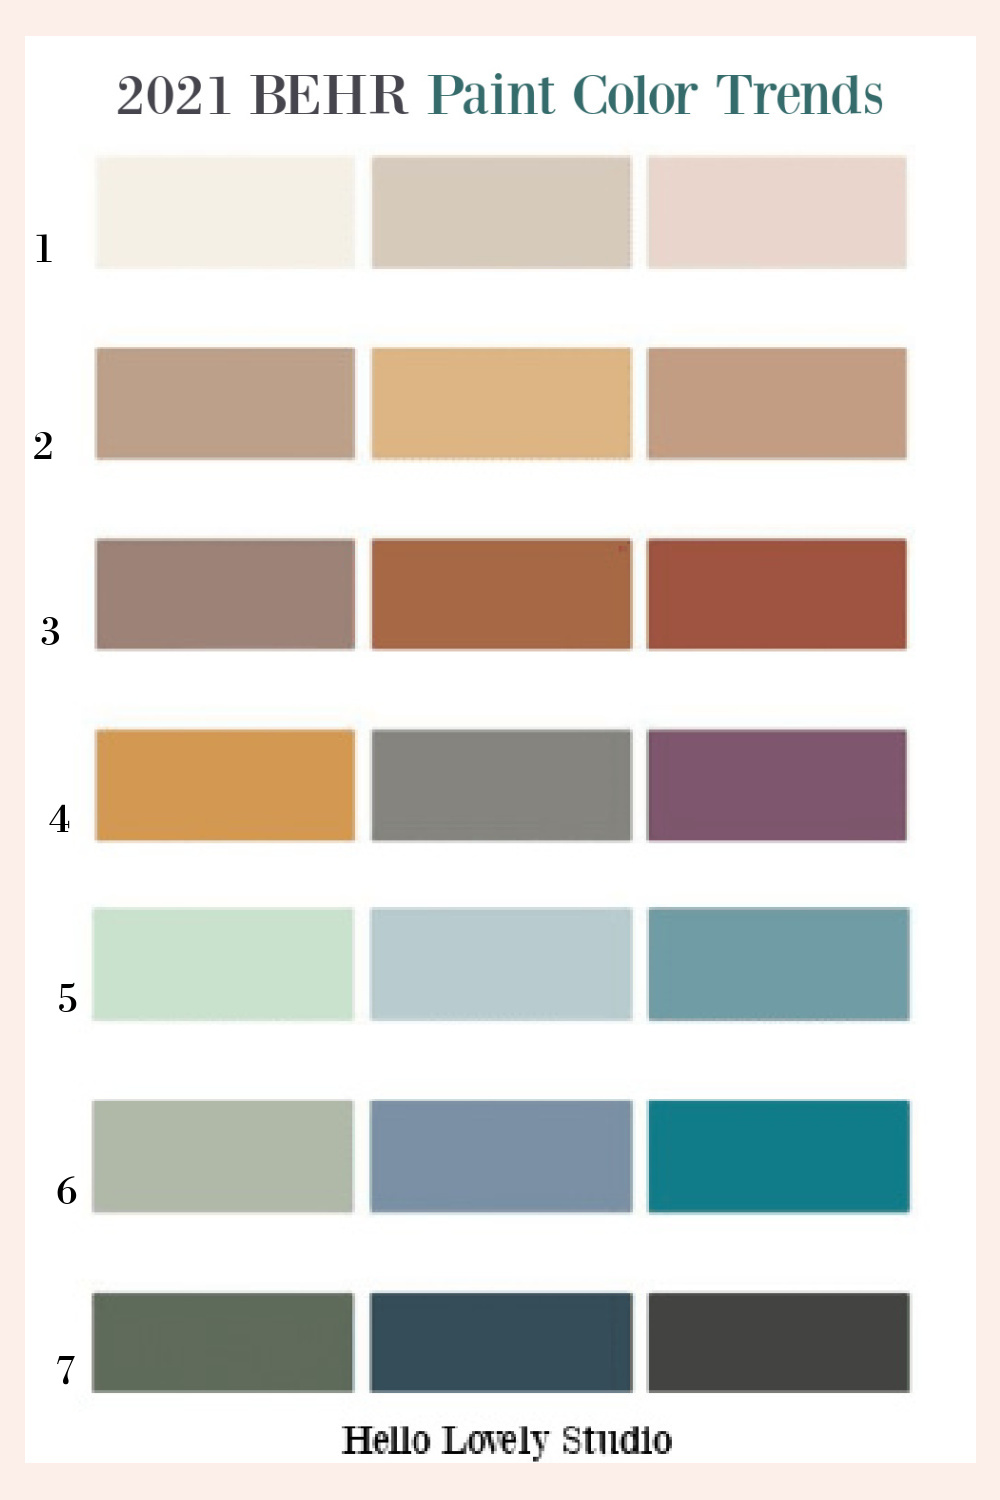 Behr paint color trends for 2021 - try these gorgeous colors in your own home. Discover inspiring understated neutrals to try in your own home. #paintcolors